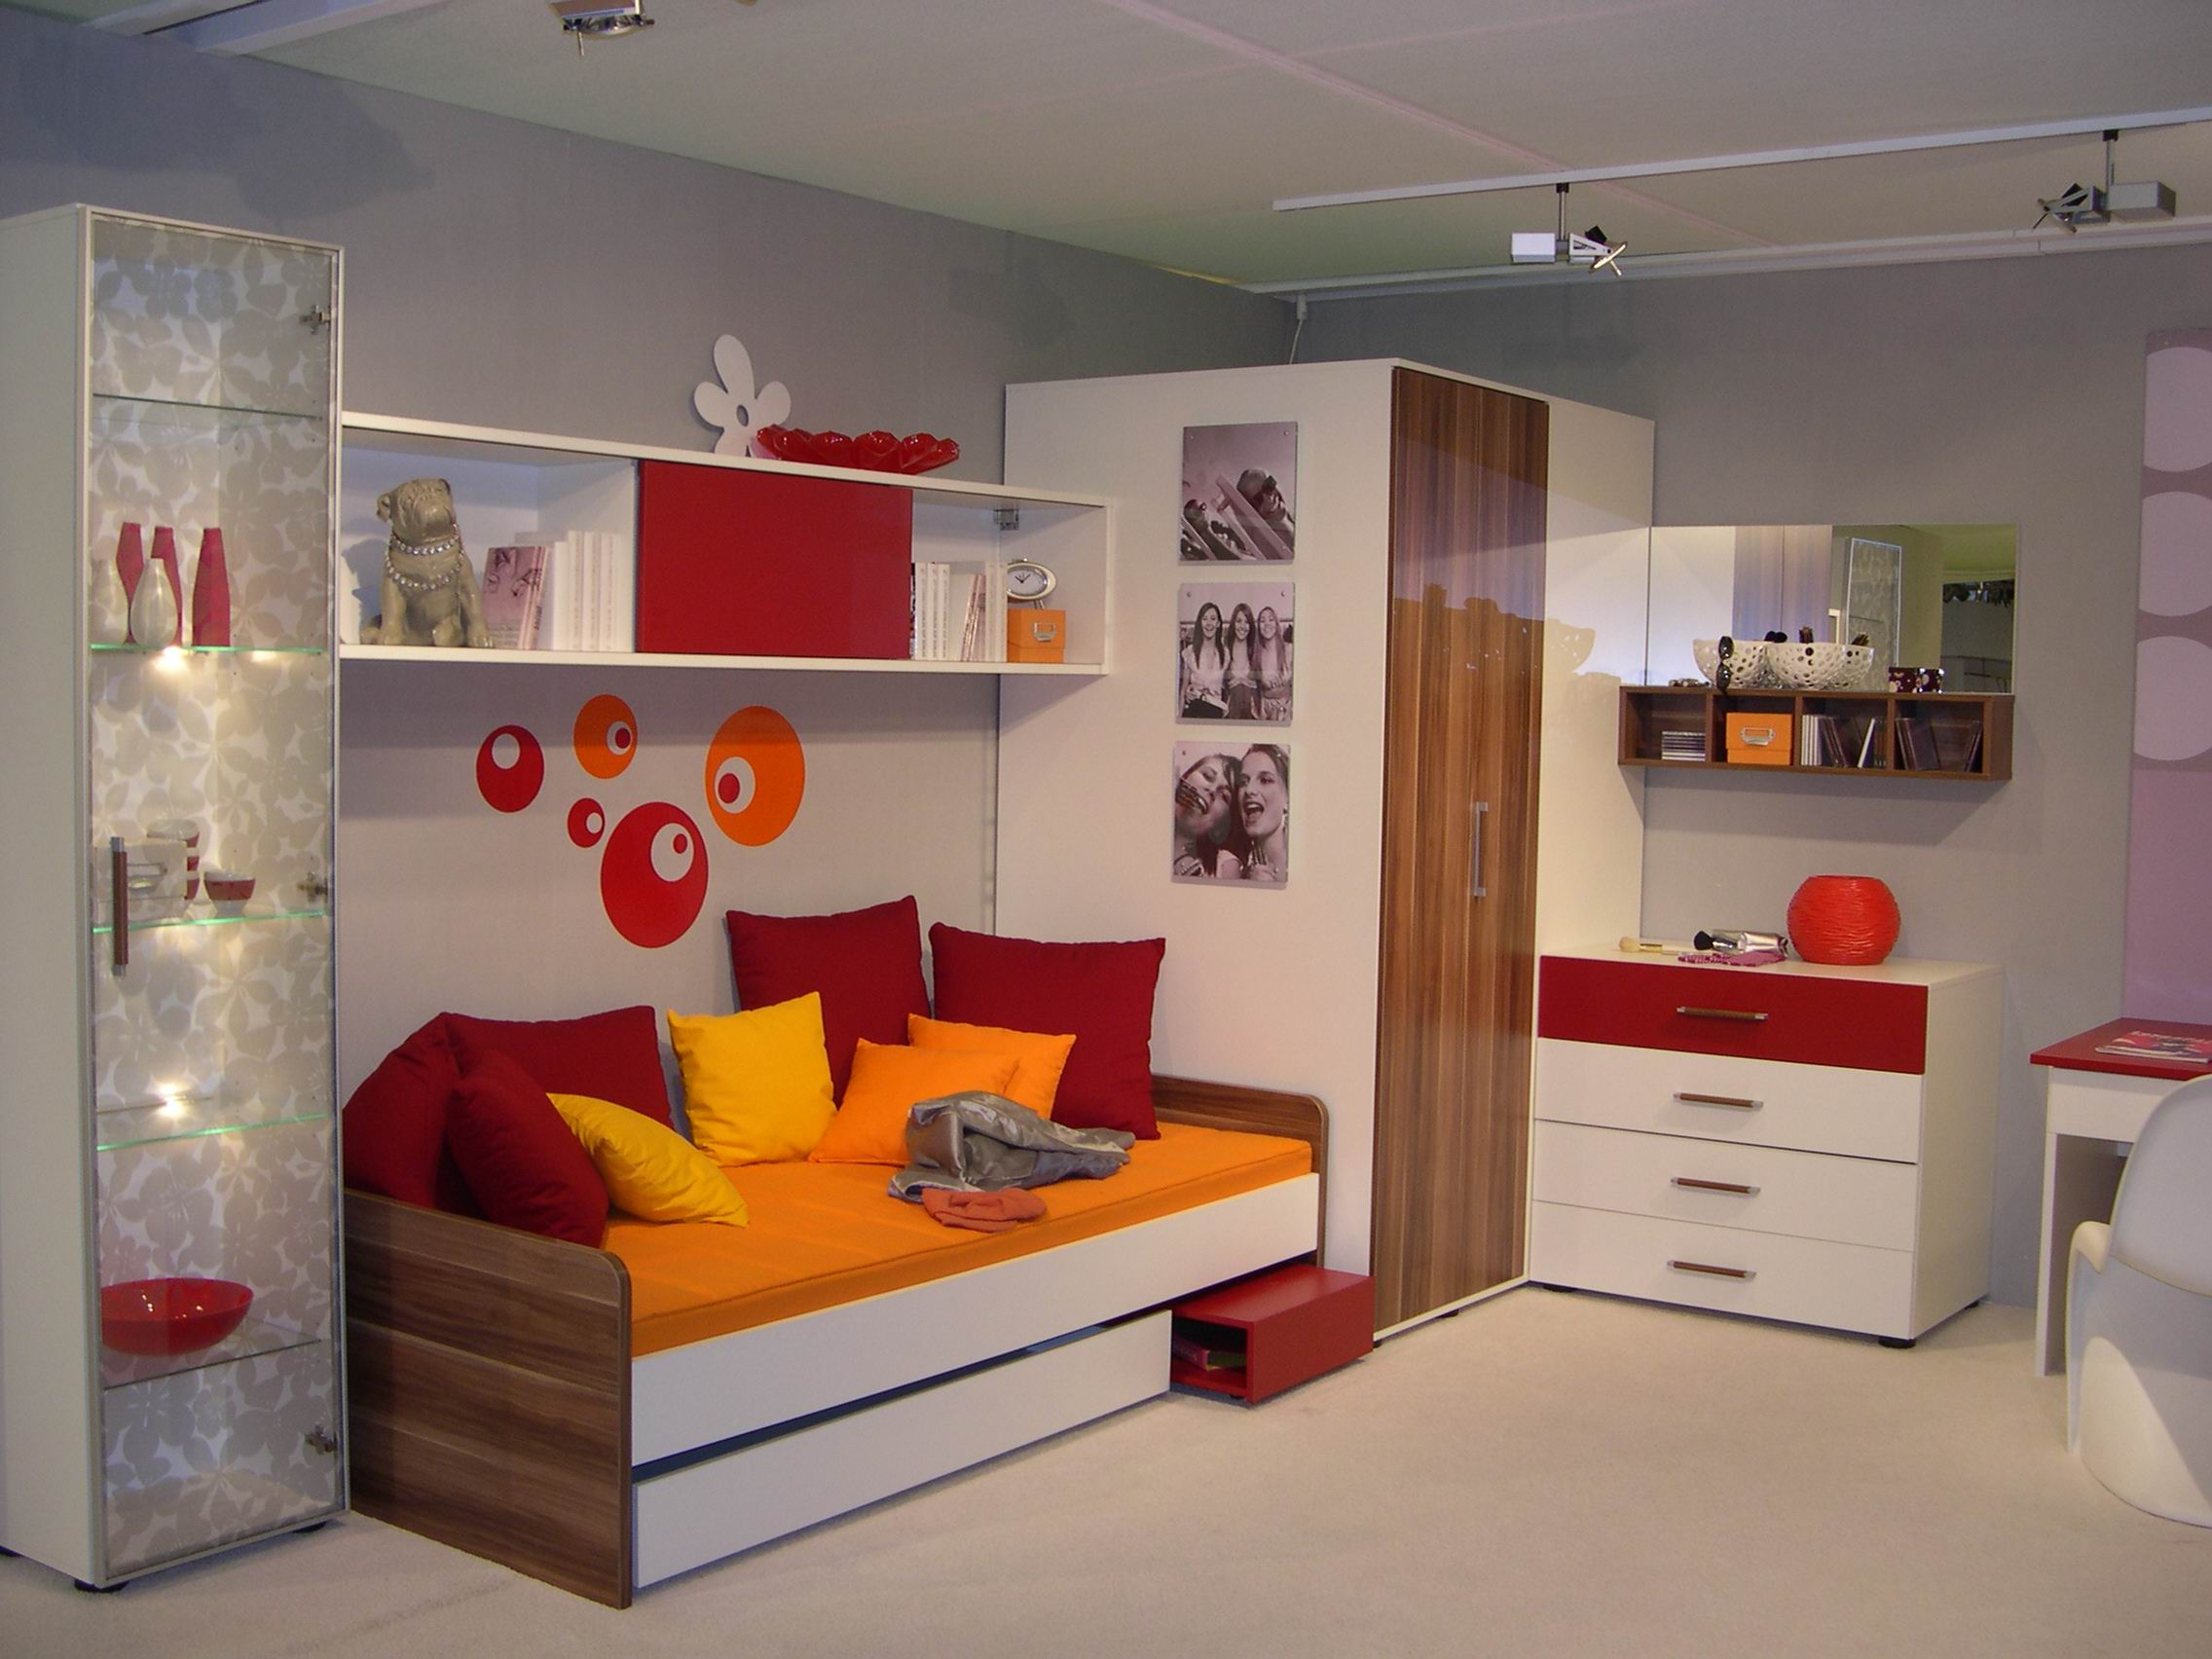 Idee deco chambre ado fille a faire soi meme for Photo de chambre d ado fille